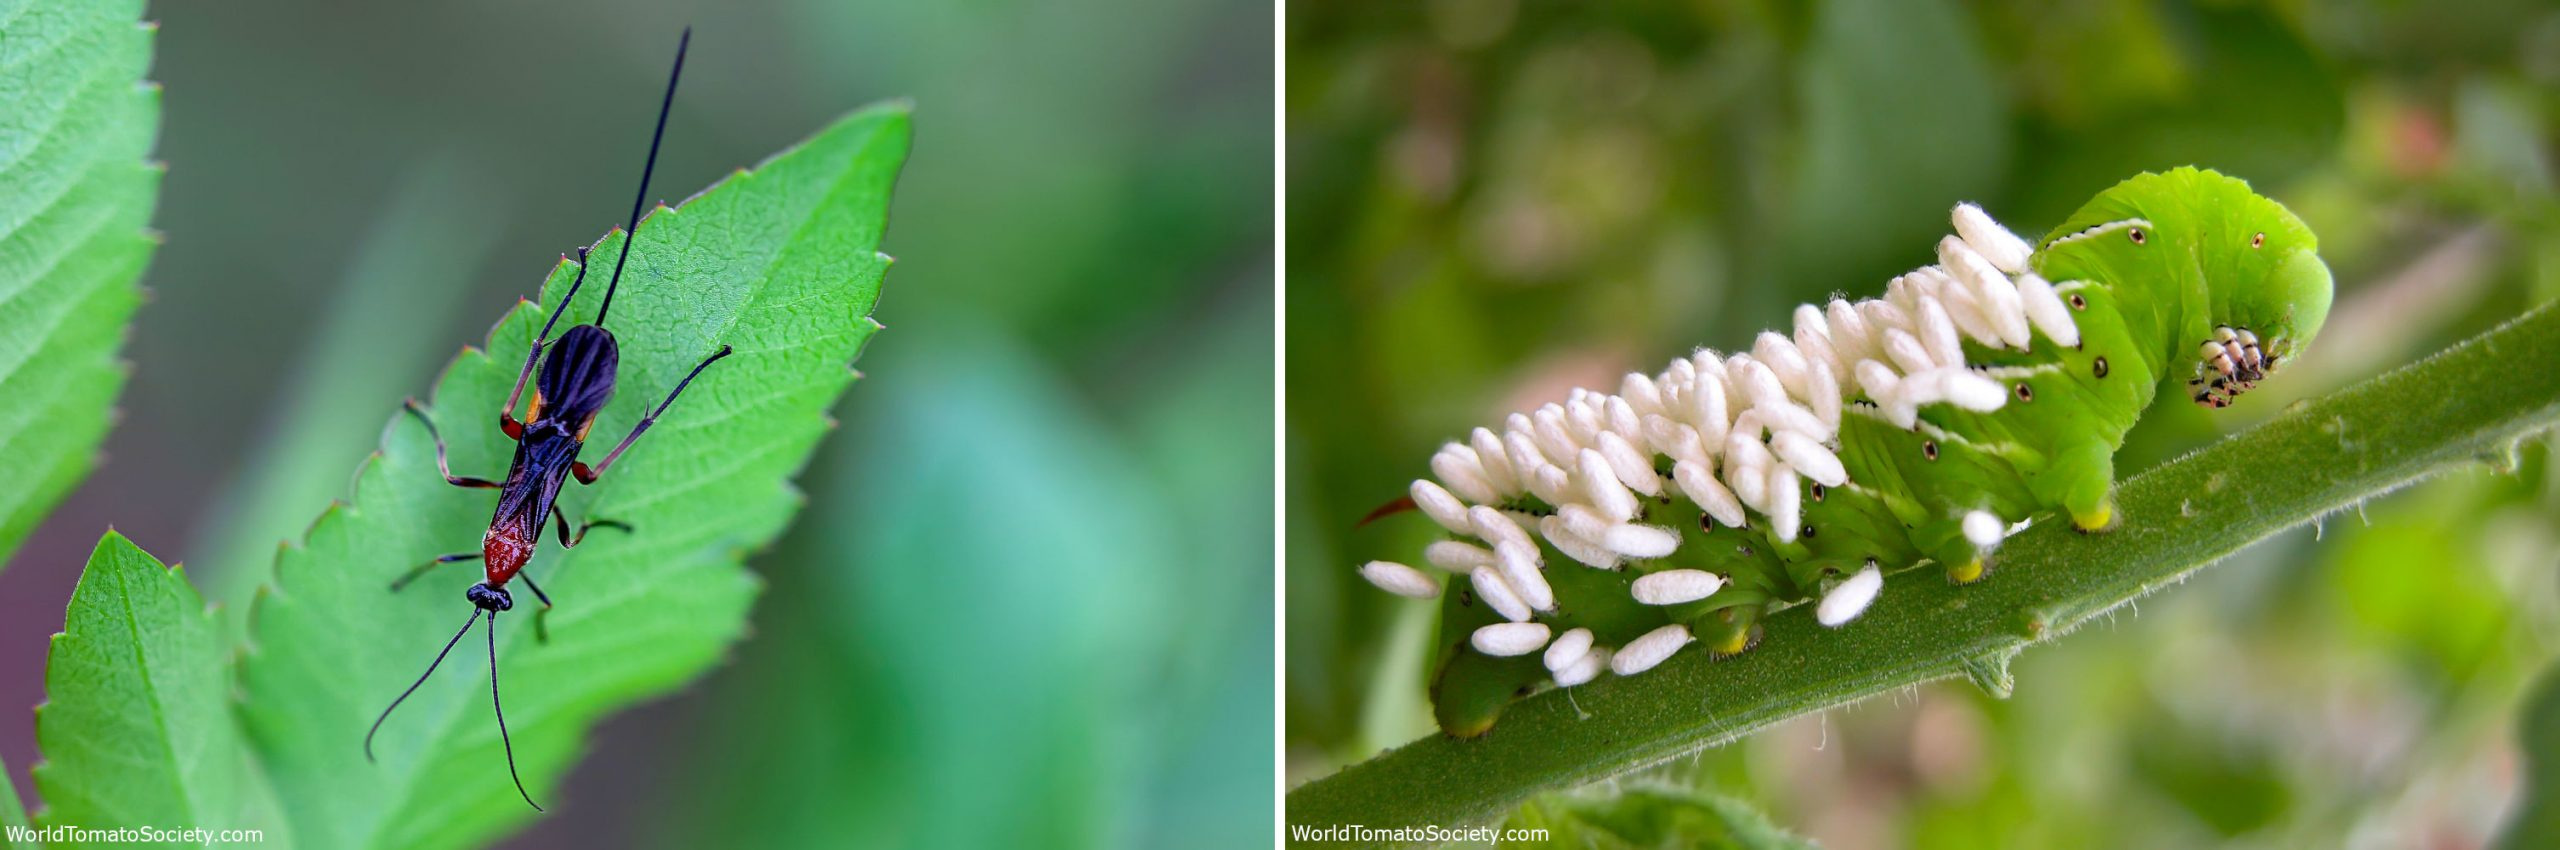 ARTICLE Five Bugs You Want to See in Your Garden Braconid Cocoons and Wasps Edit